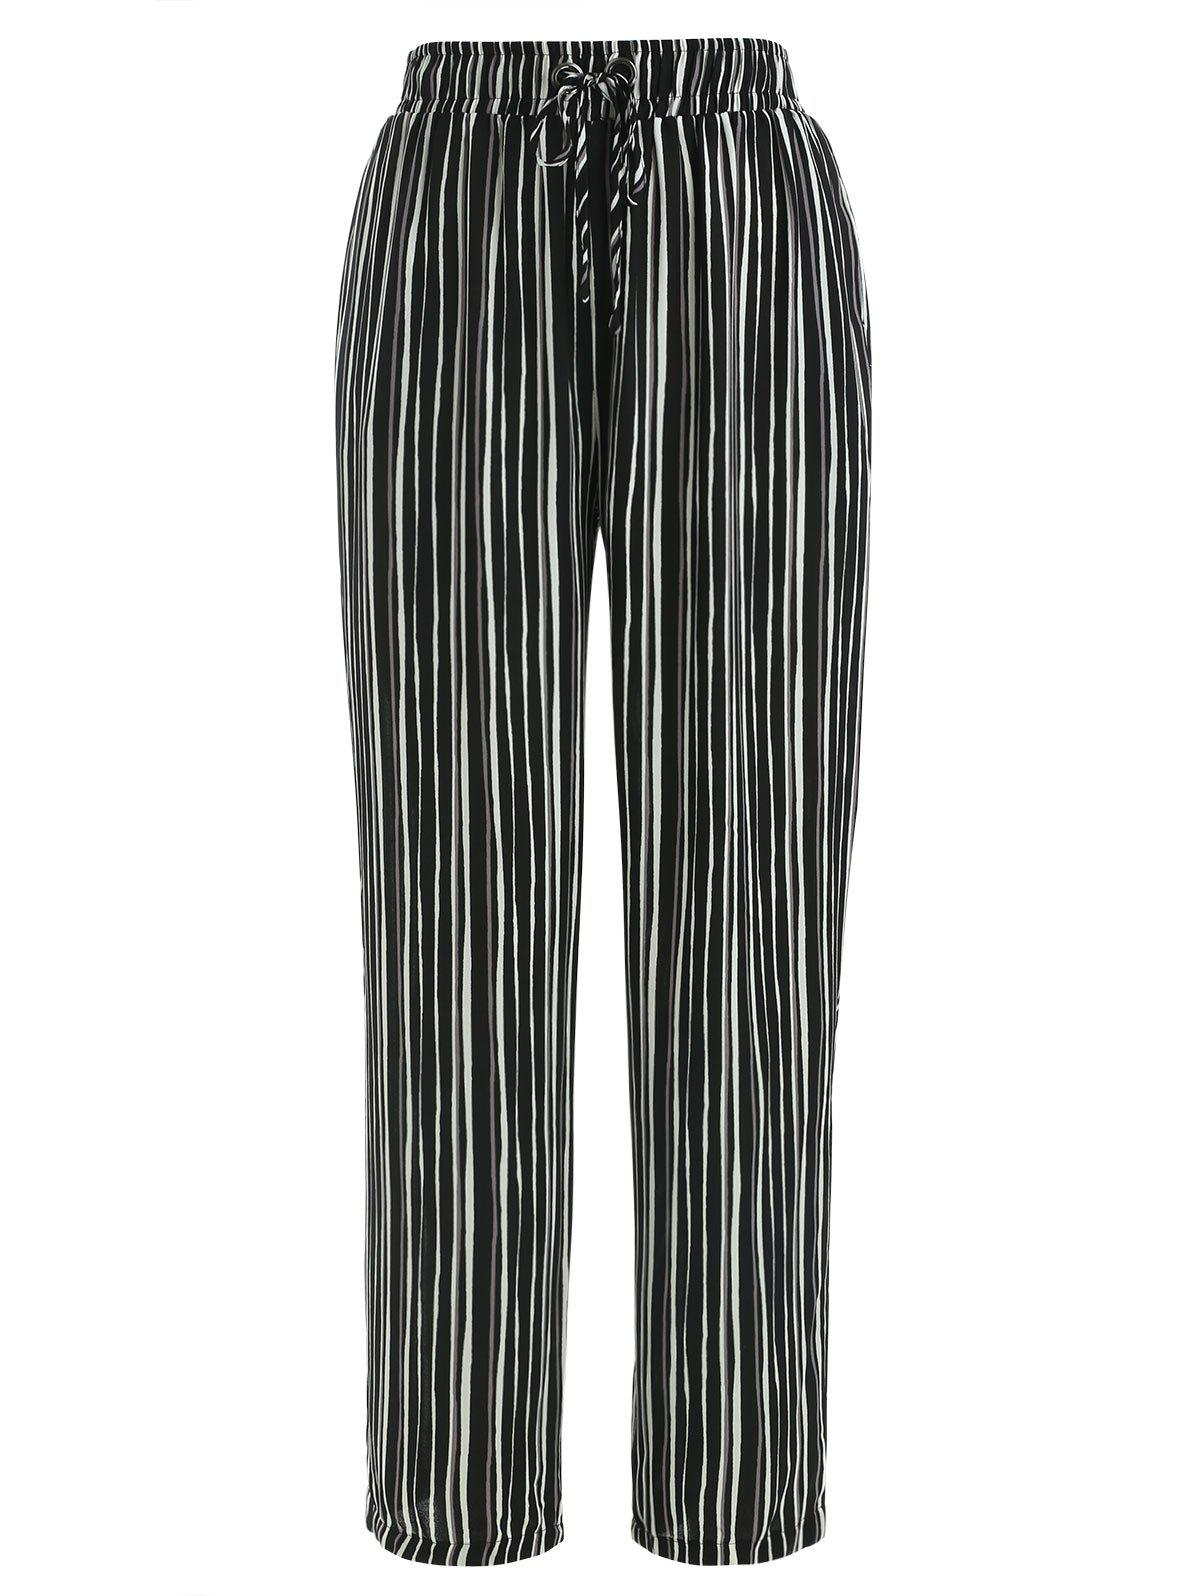 Striped Print Straight Pants - BLACK L